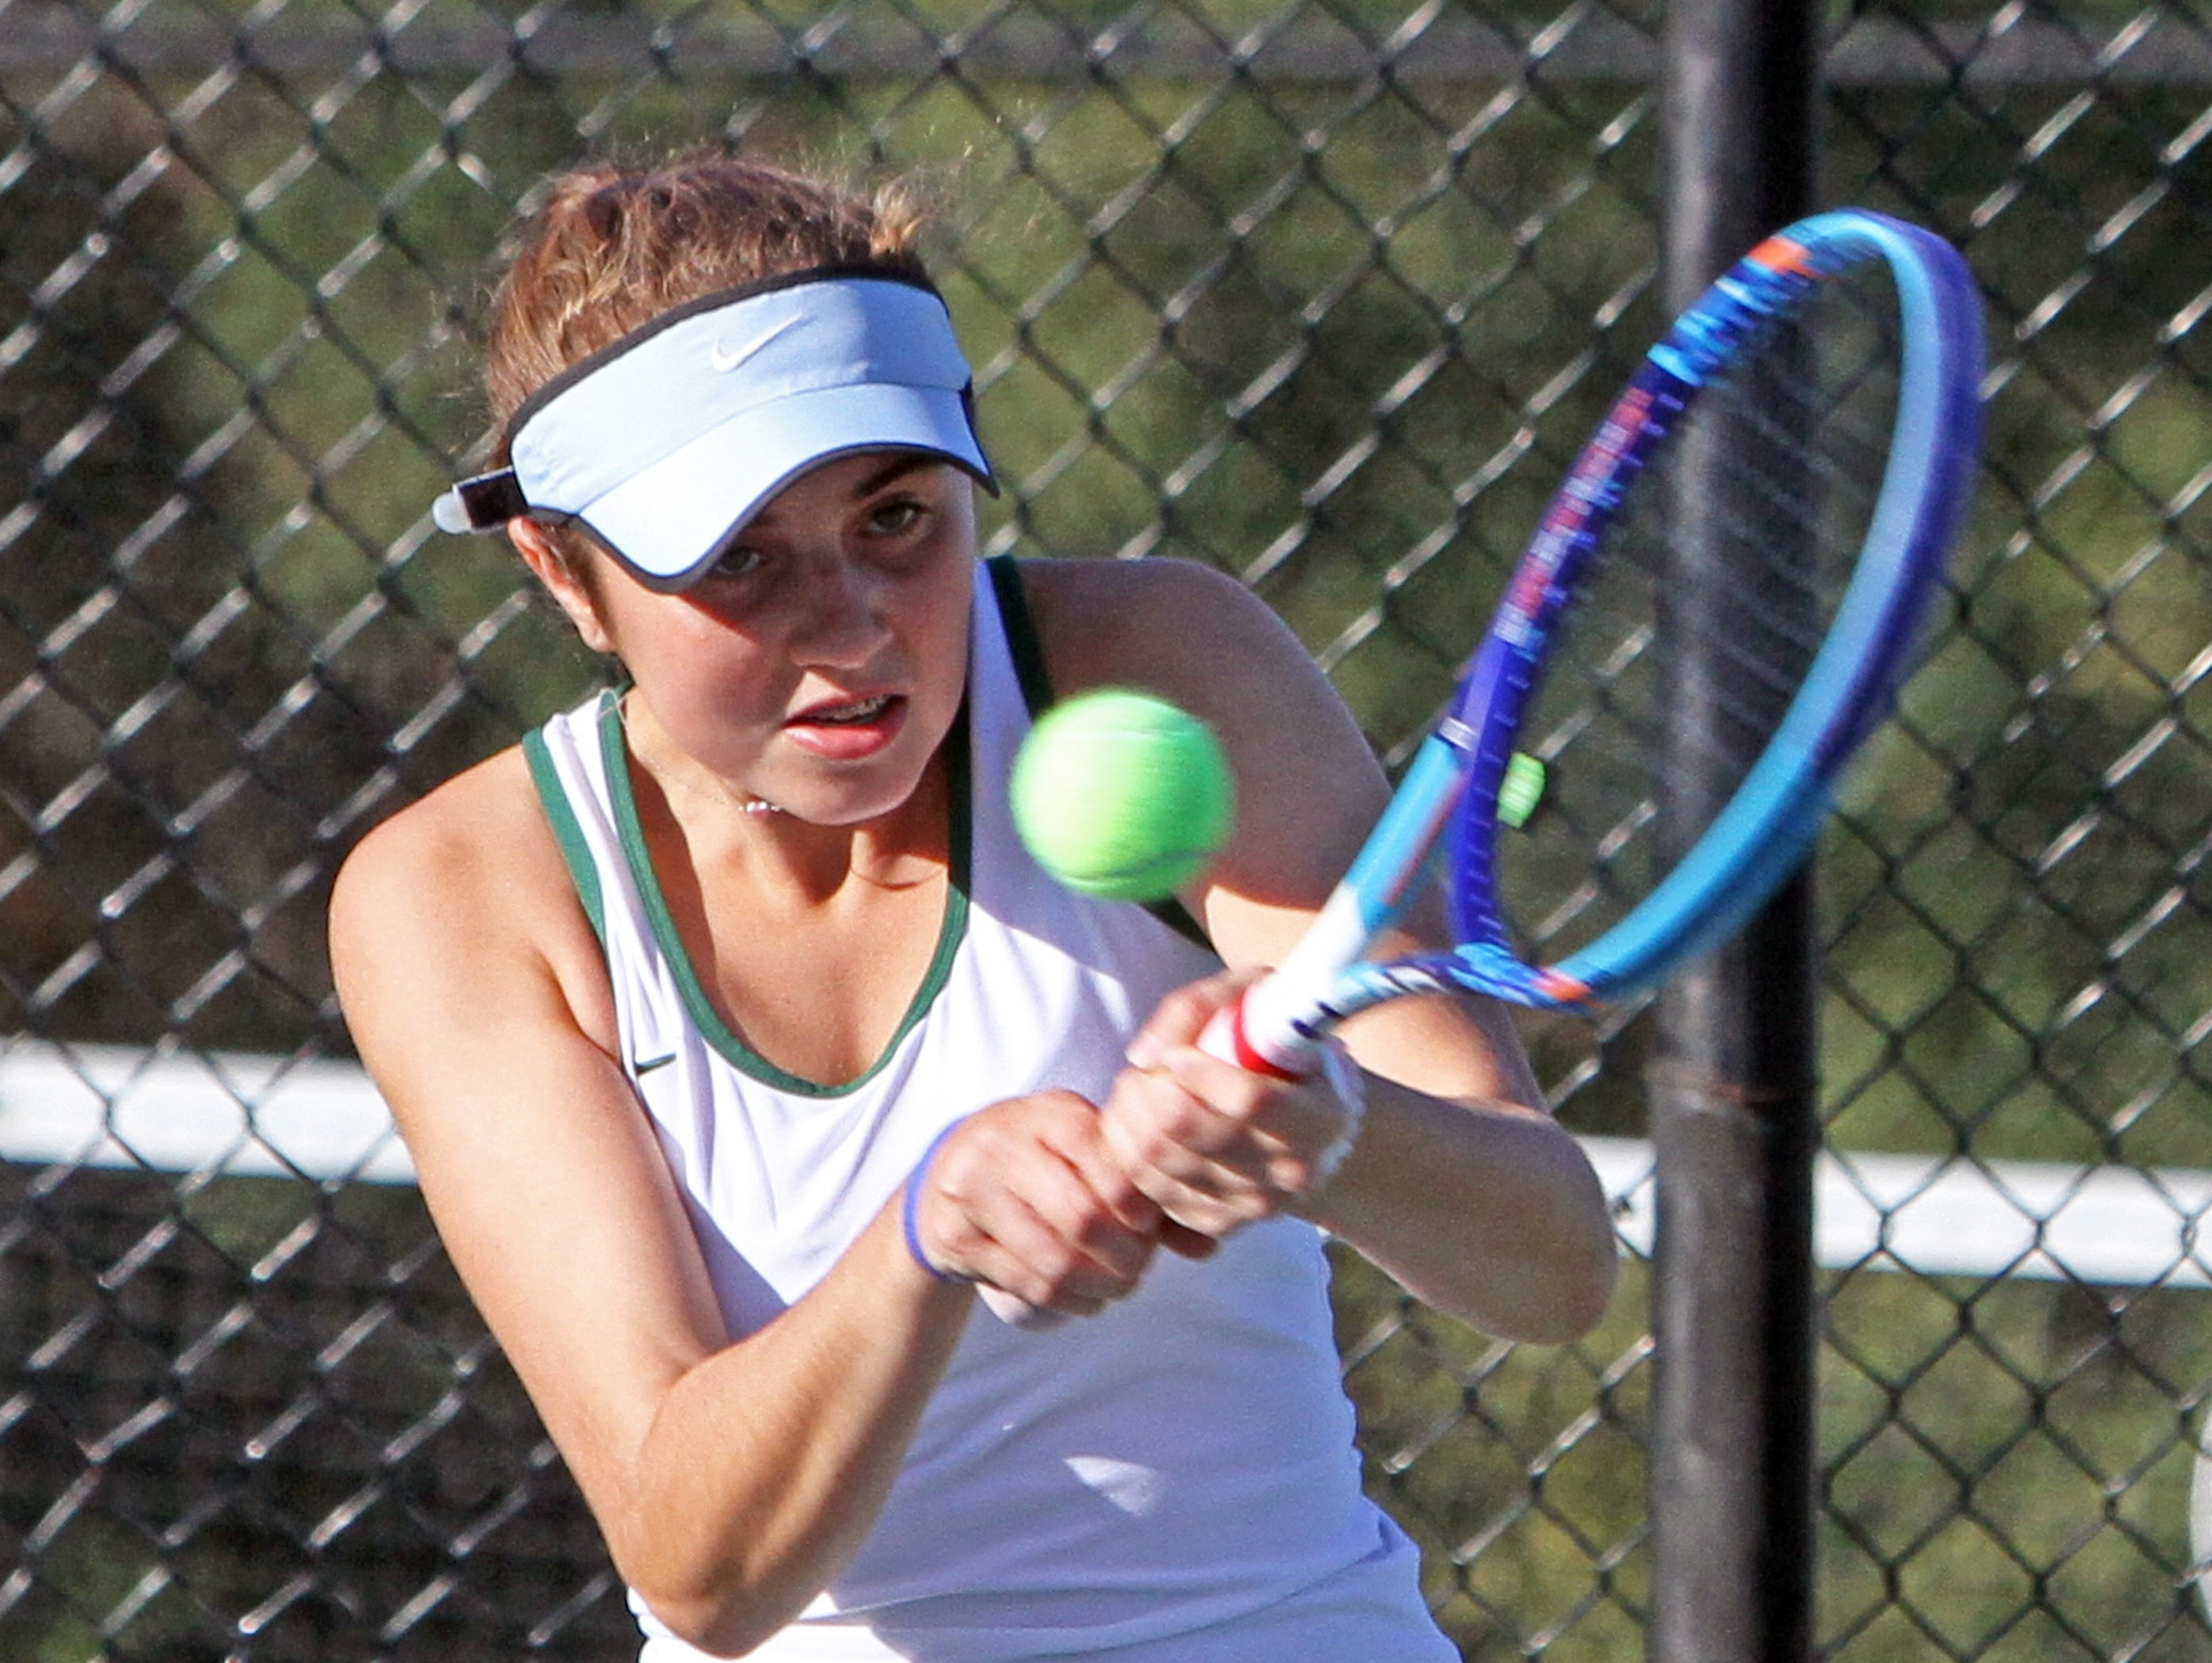 Top seeded Caitlyn Ferrante of Yorktown returns a shot to Maxine Zaretsky of Briarcliff during the Section 1 Girls' Tennis Singles Championship Tournament at Harrison High School Oct. 20, 2015.